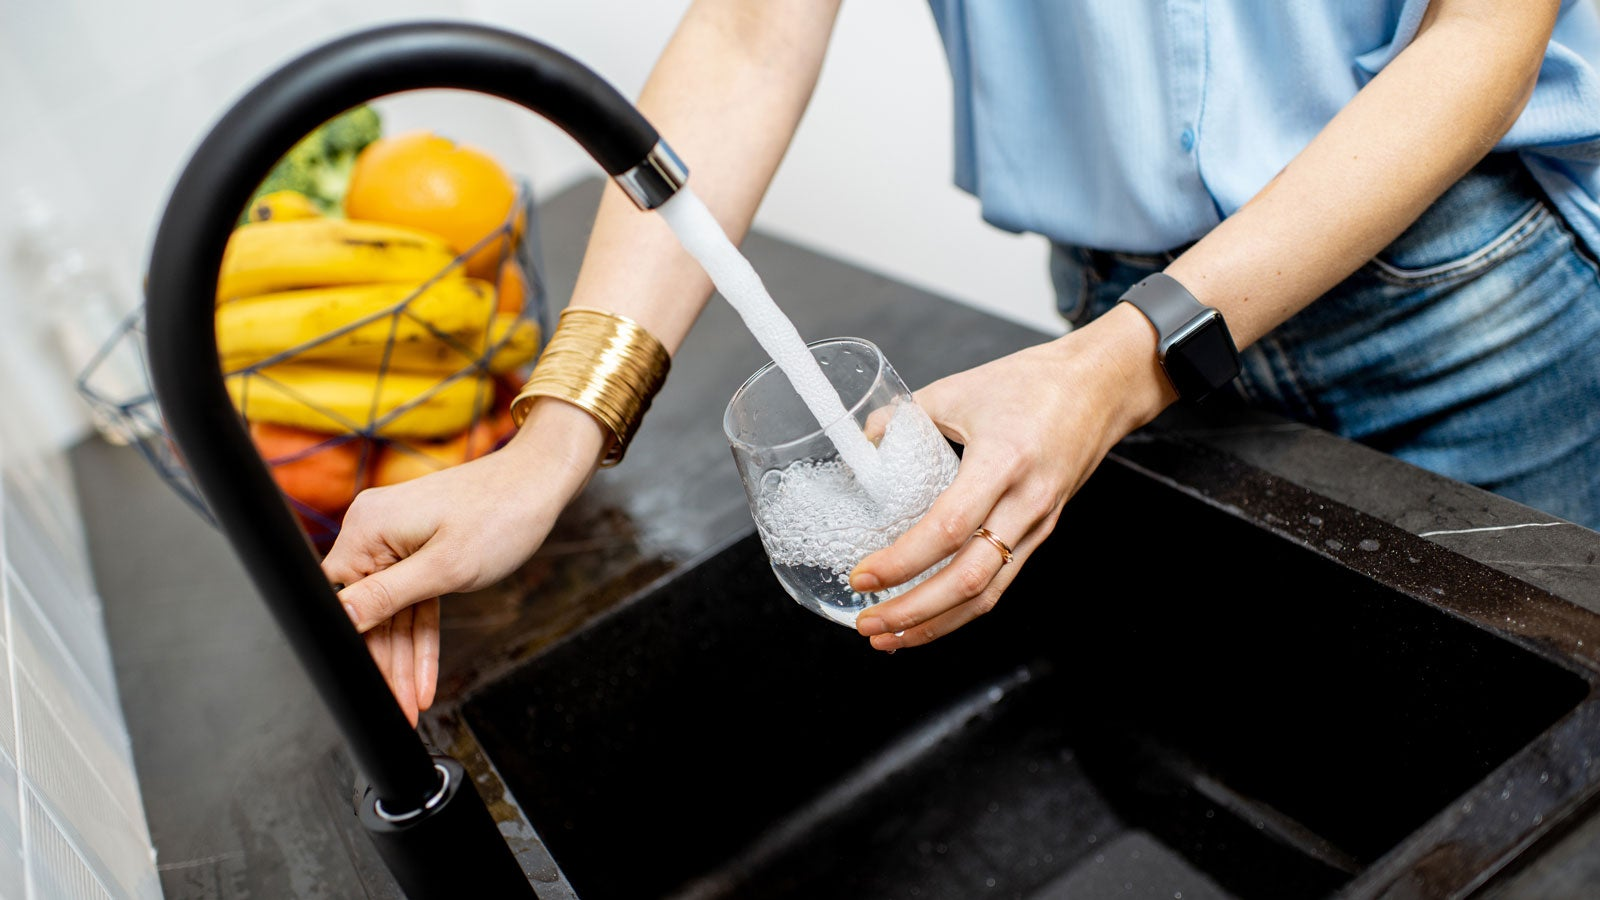 Person filling a glass of water at the kitchen sink.